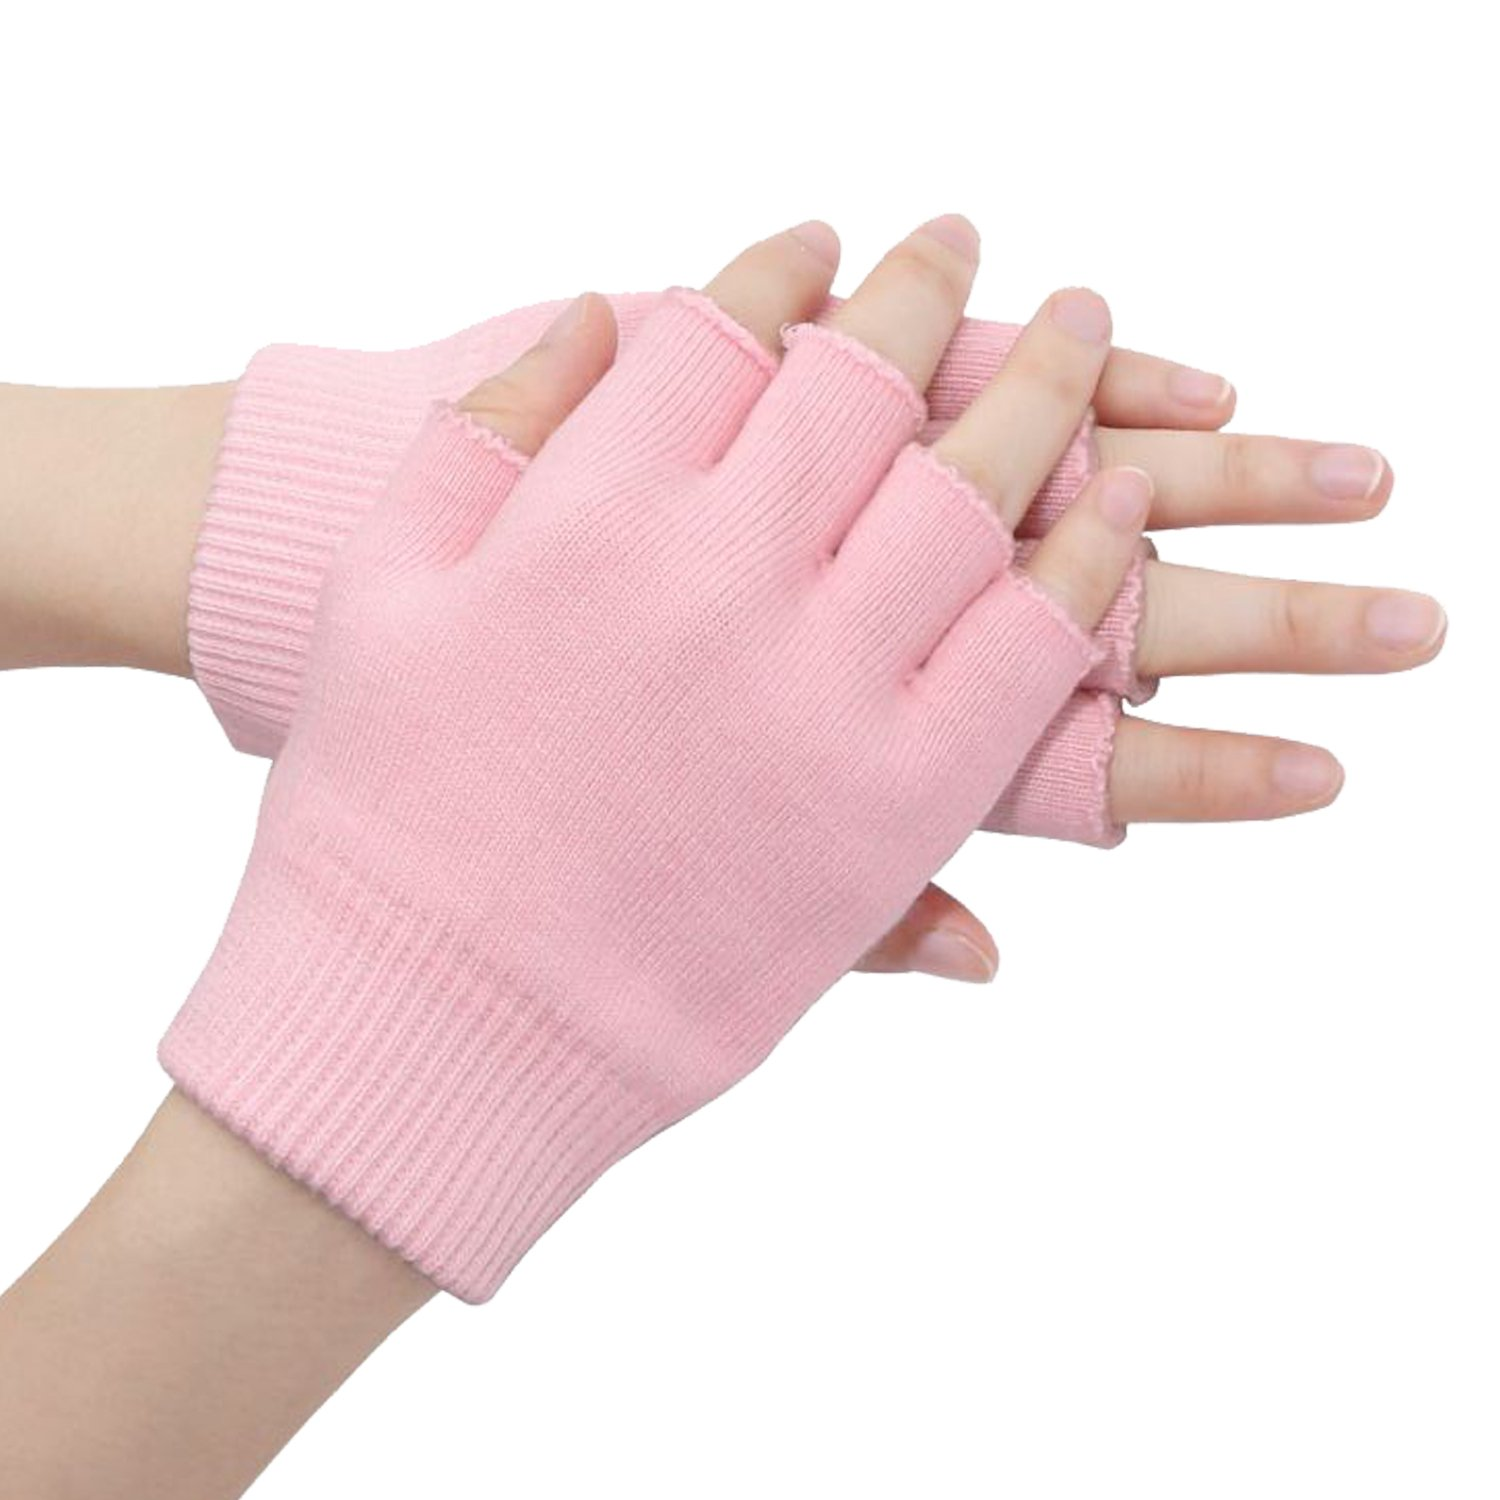 Galaxy Beauty Moisture Pink Gel Gloves Moisturizing Spa Treatment Hand Mask Cracked Skin Care Soft Repair Open Fingers Style ATA